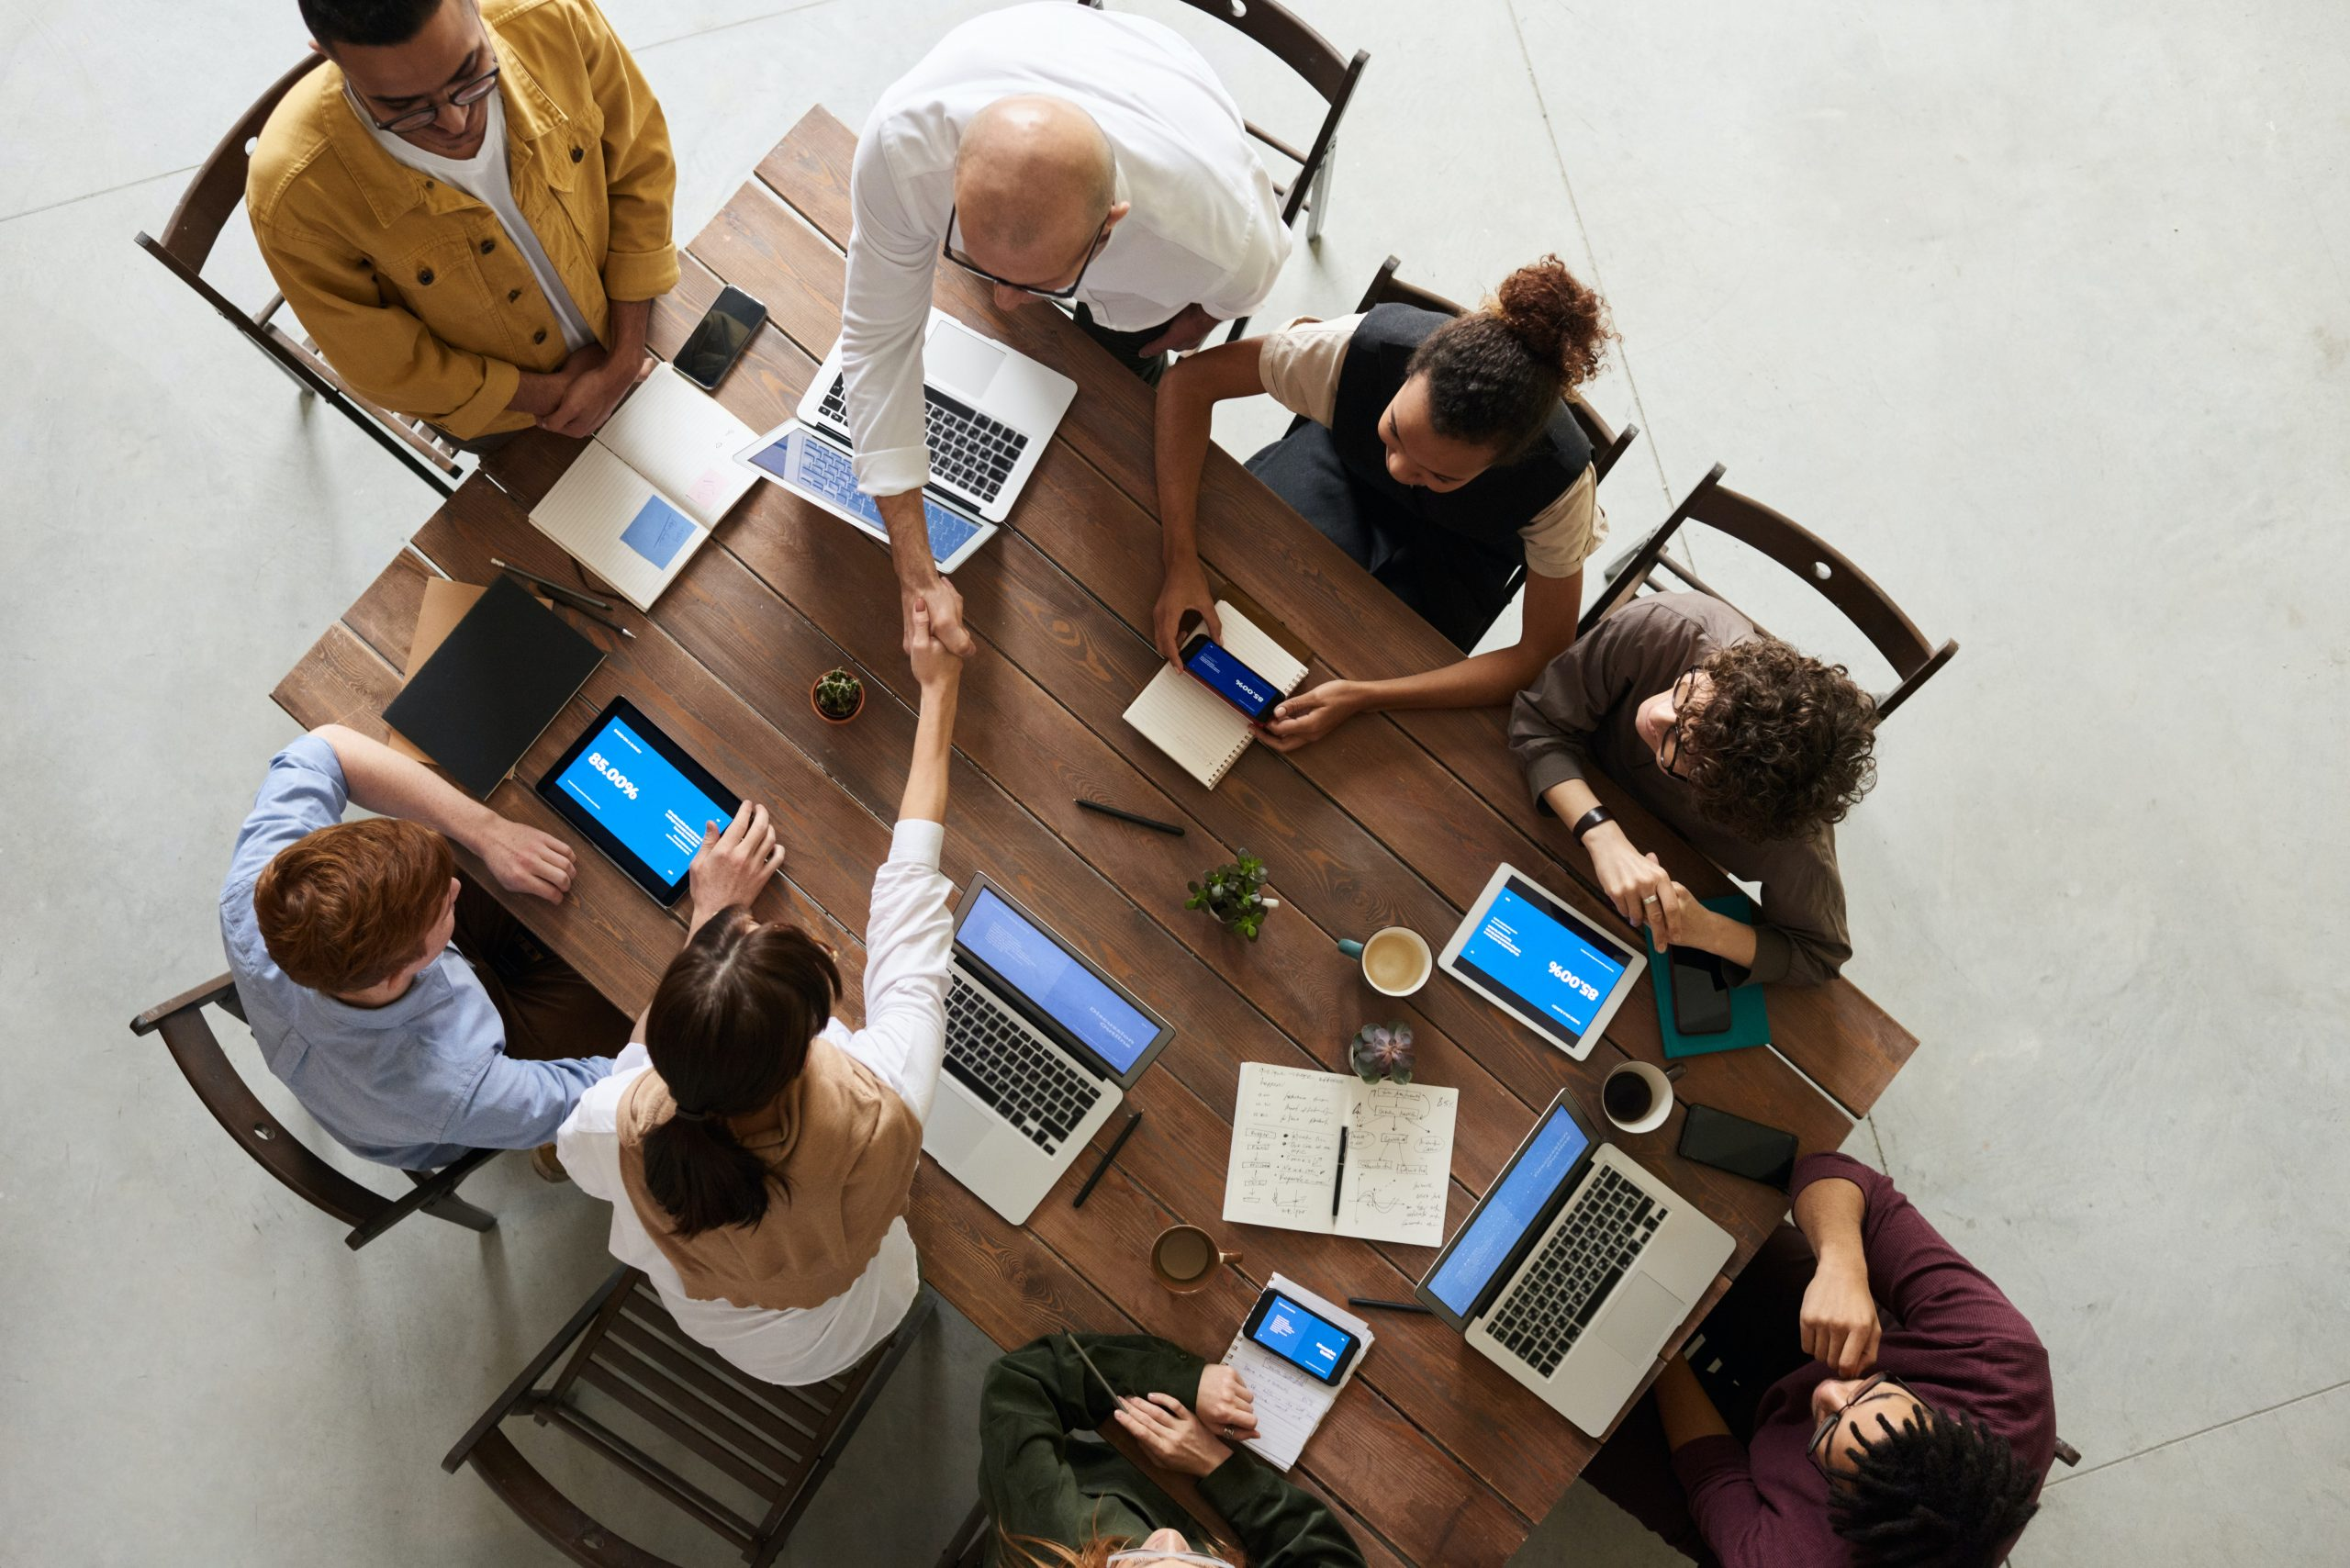 https://nxgnconsulting.com/wp-content/uploads/2020/10/Stock_Meeting1-scaled.jpg